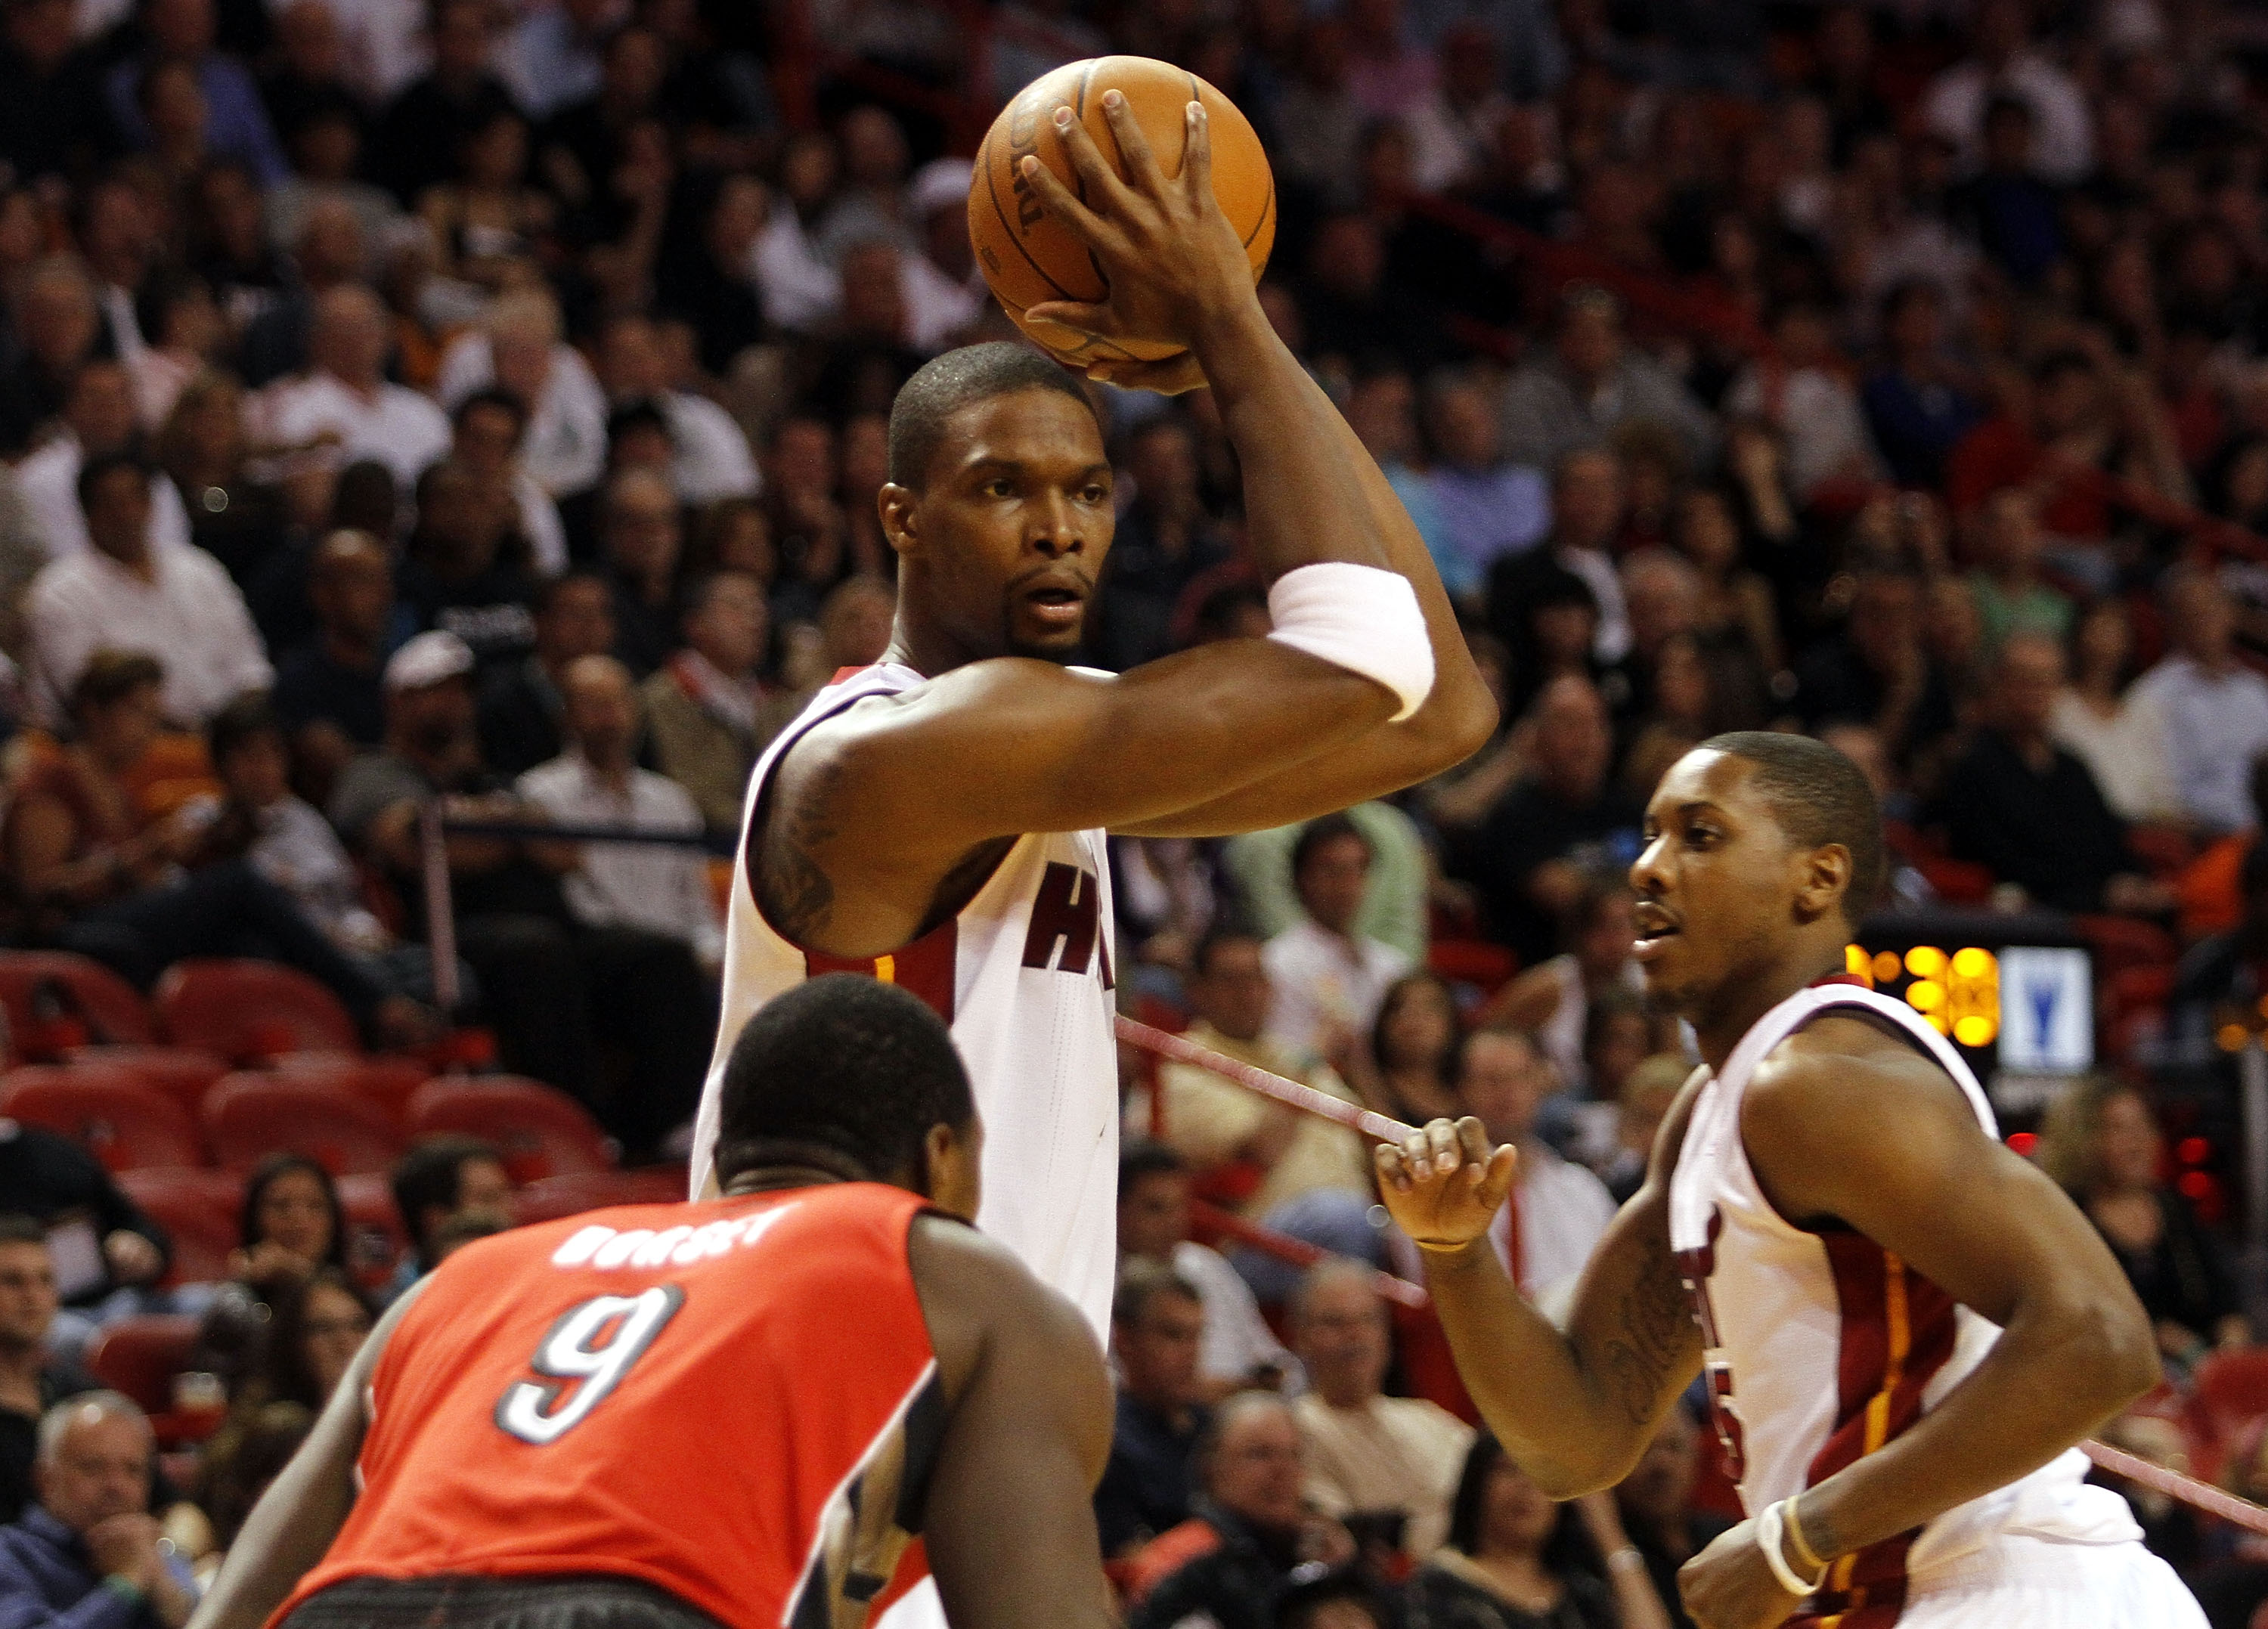 MIAMI - NOVEMBER 13:  Forward Chris Bosh #1 of the Miami Heat drives against Joey Dorsey #9 of the Toronto Raptors at American Airlines Arena on November 13, 2010 in Miami, Florida. NOTE TO USER: User expressly acknowledges and agrees that, by downloading